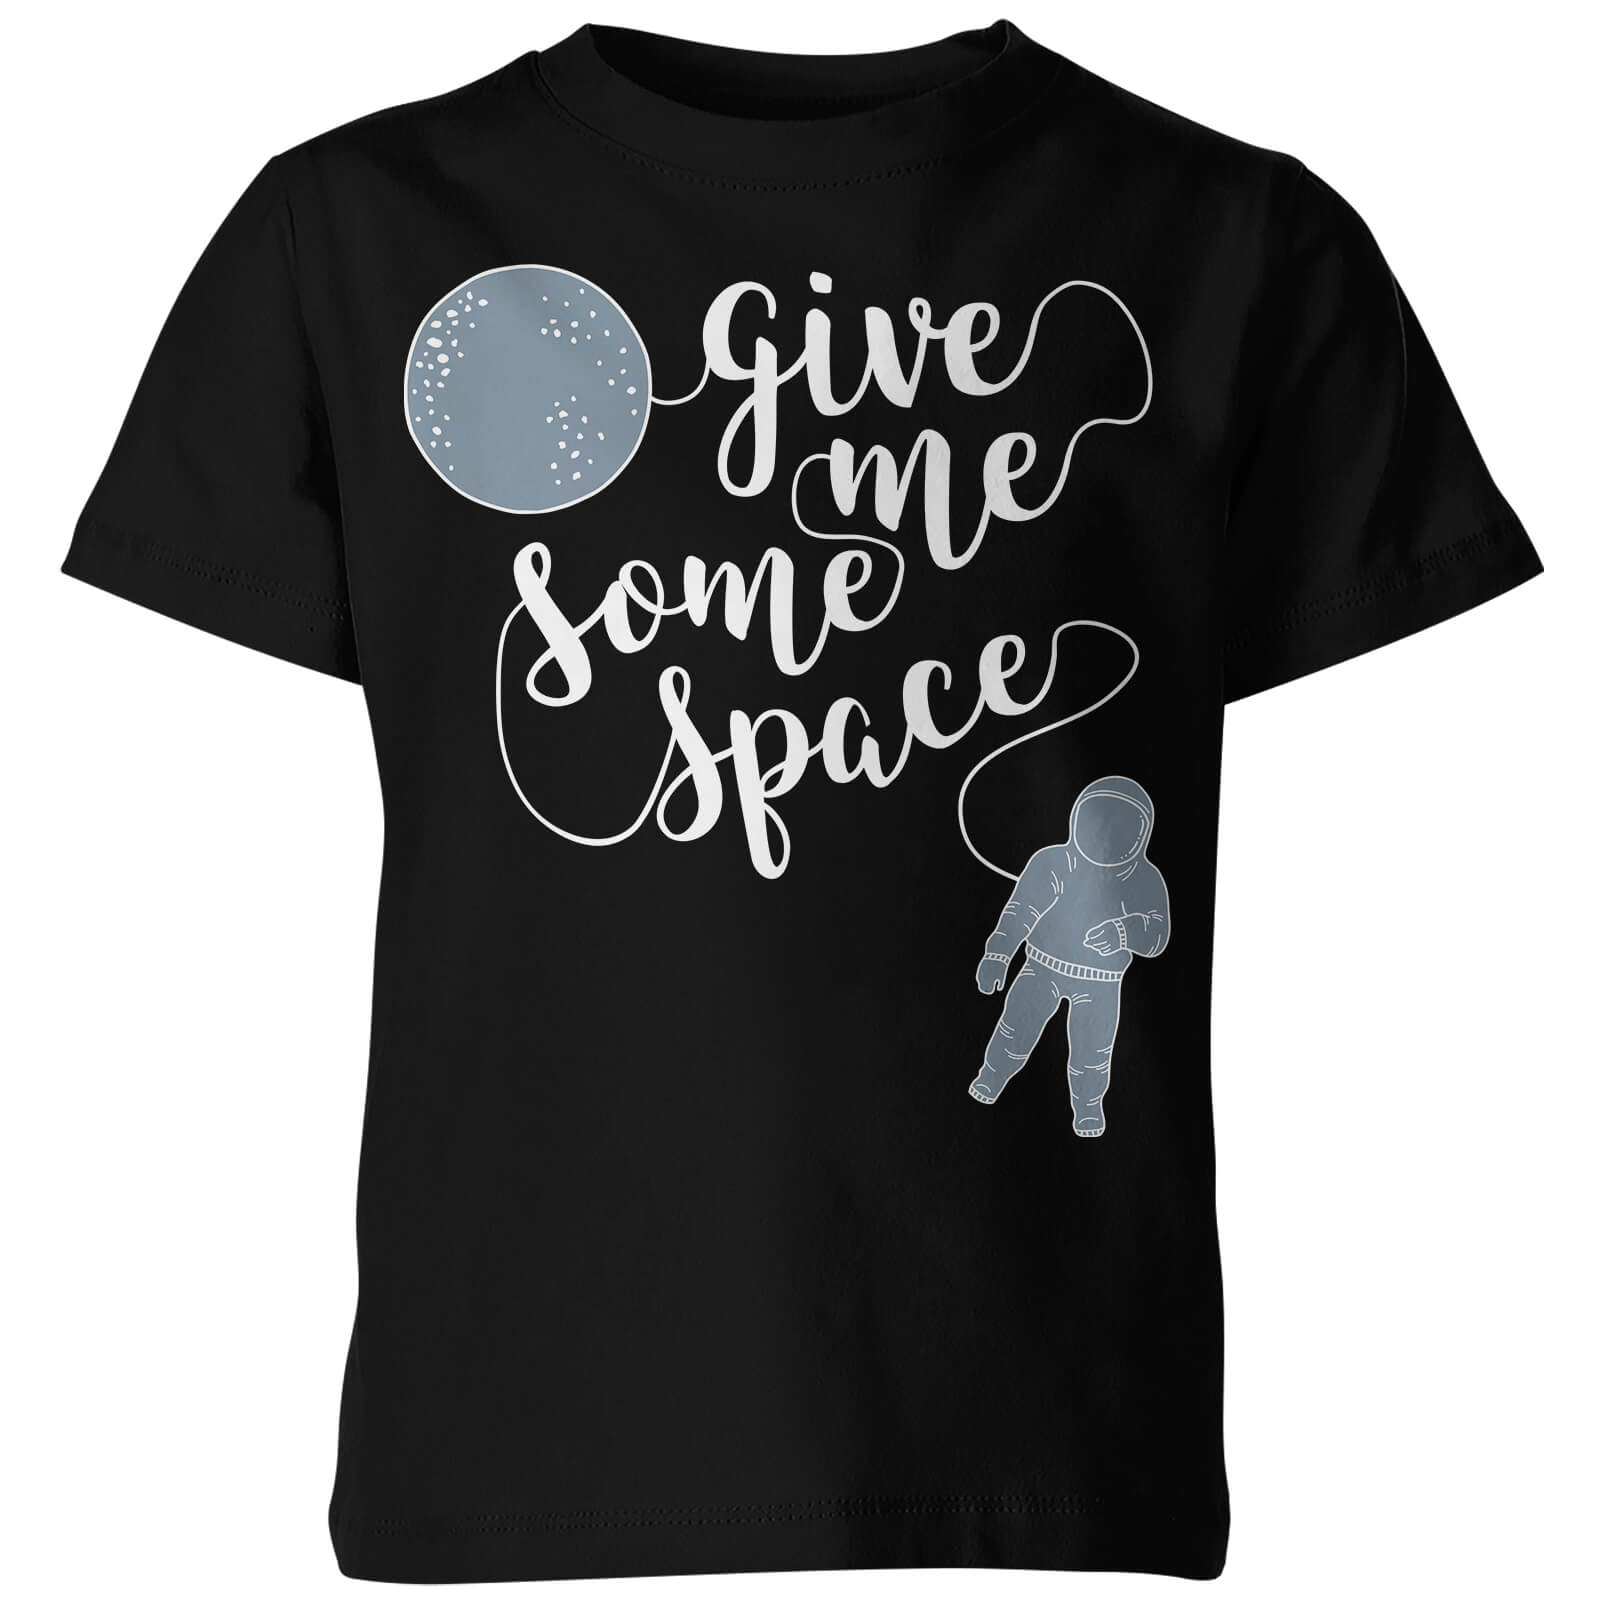 My Little Rascal Kids Give Me Some Space Black T-Shirt